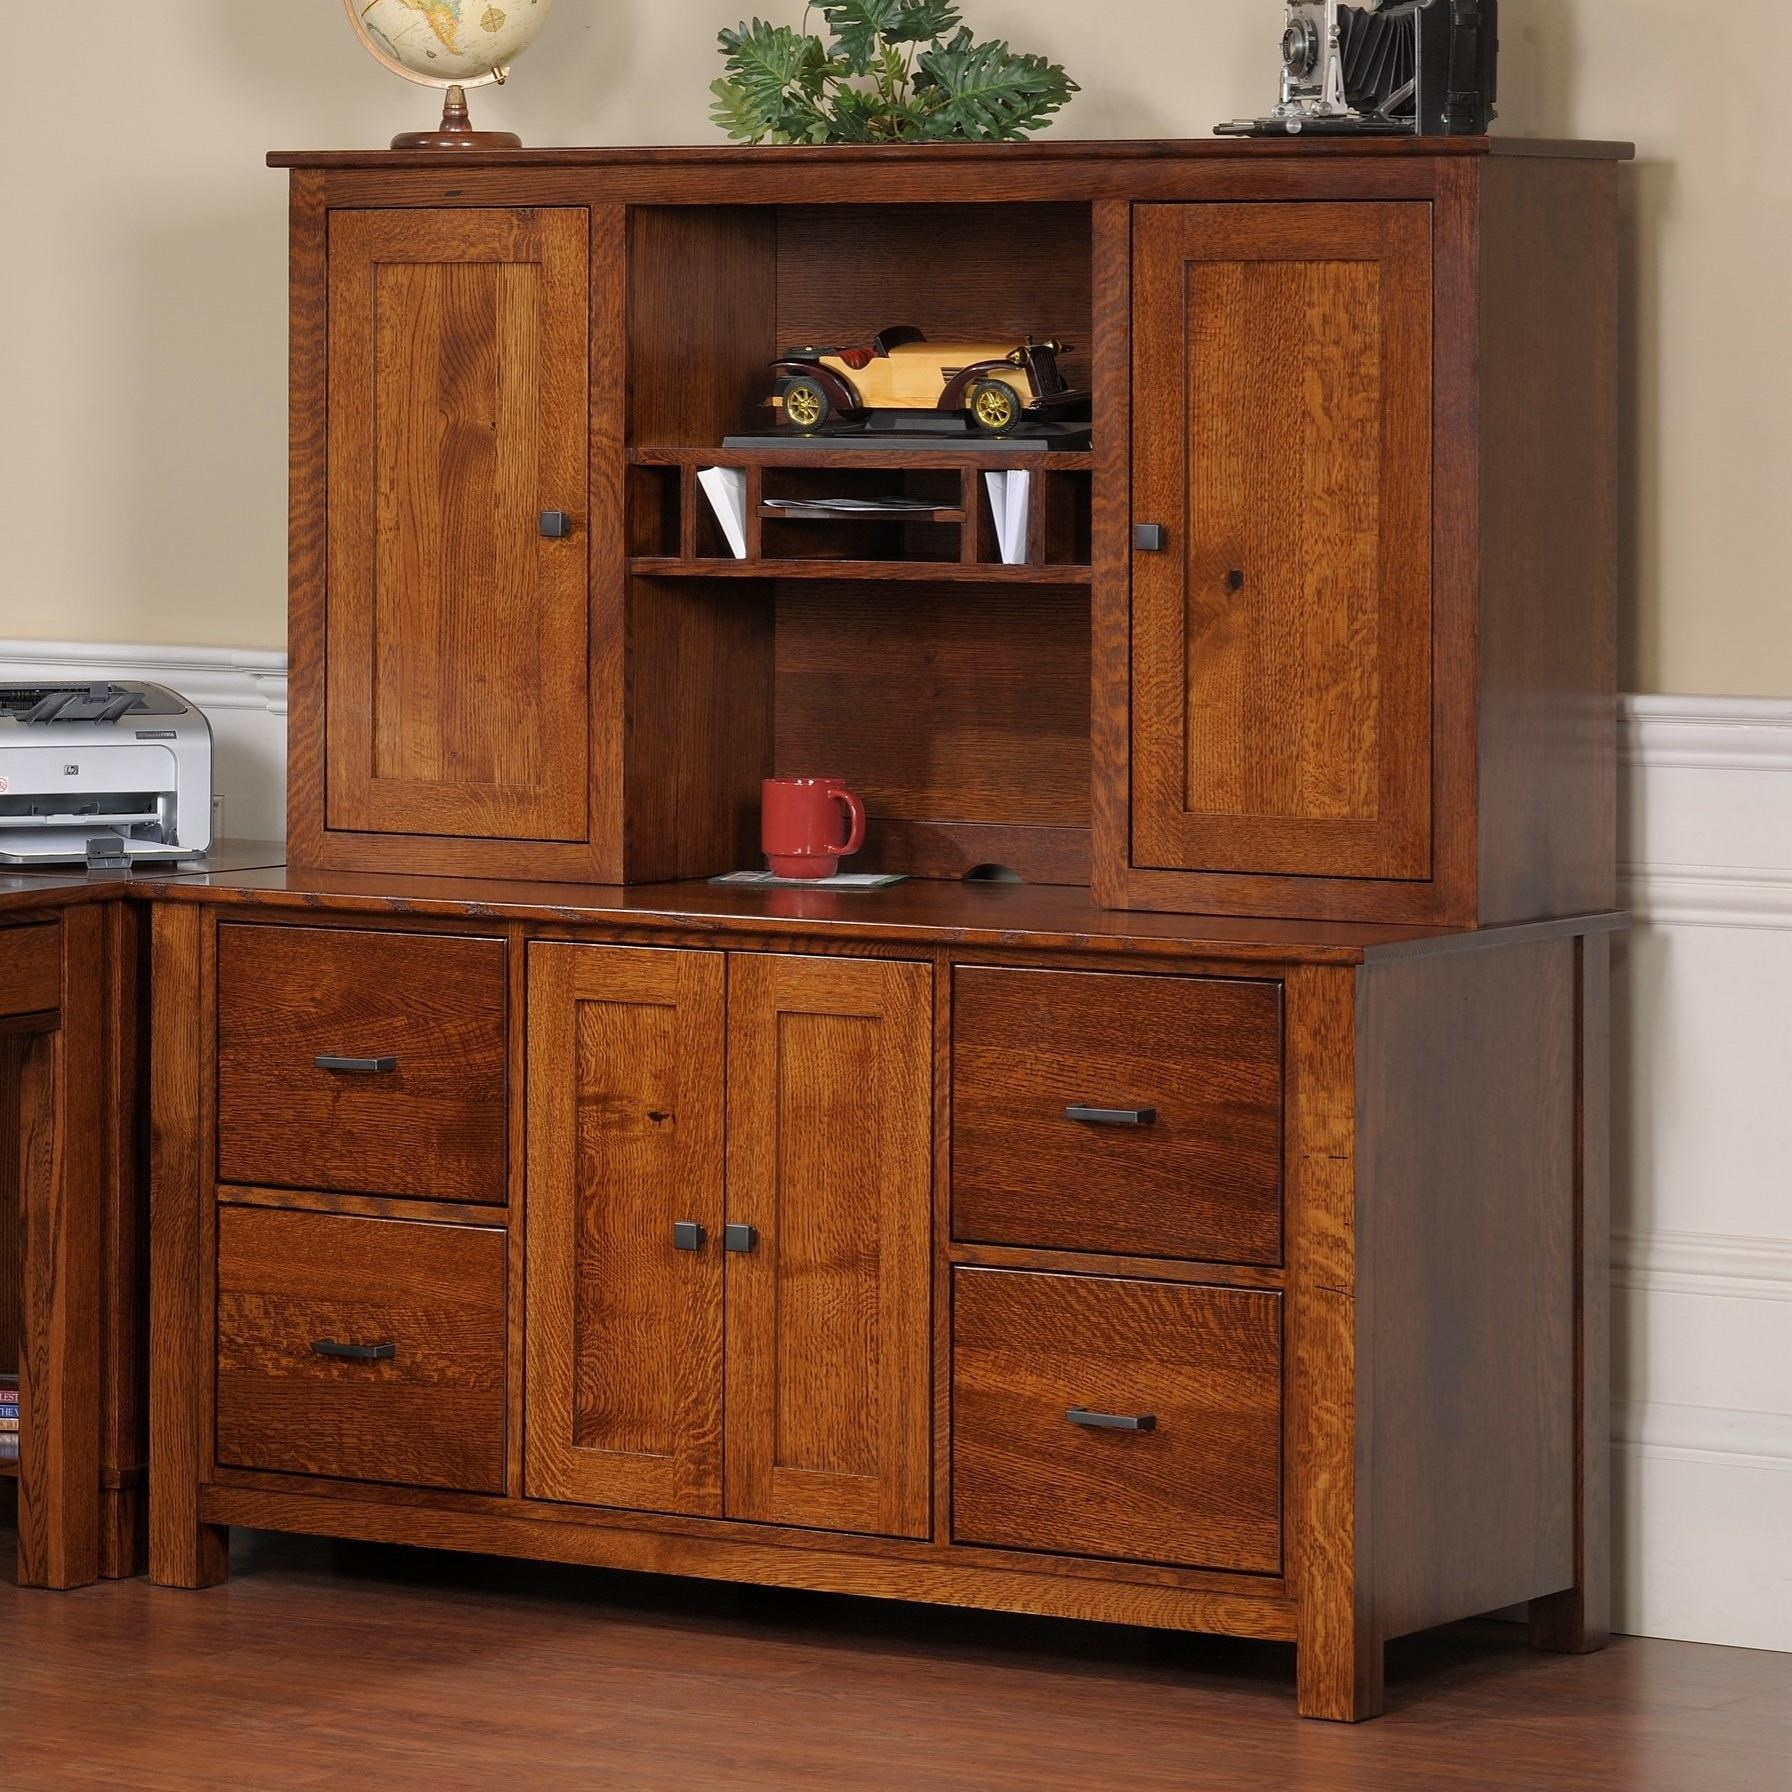 "Mission Modular 60"" Credenza and Hutch by Y & T Woodcraft at Saugerties Furniture Mart"